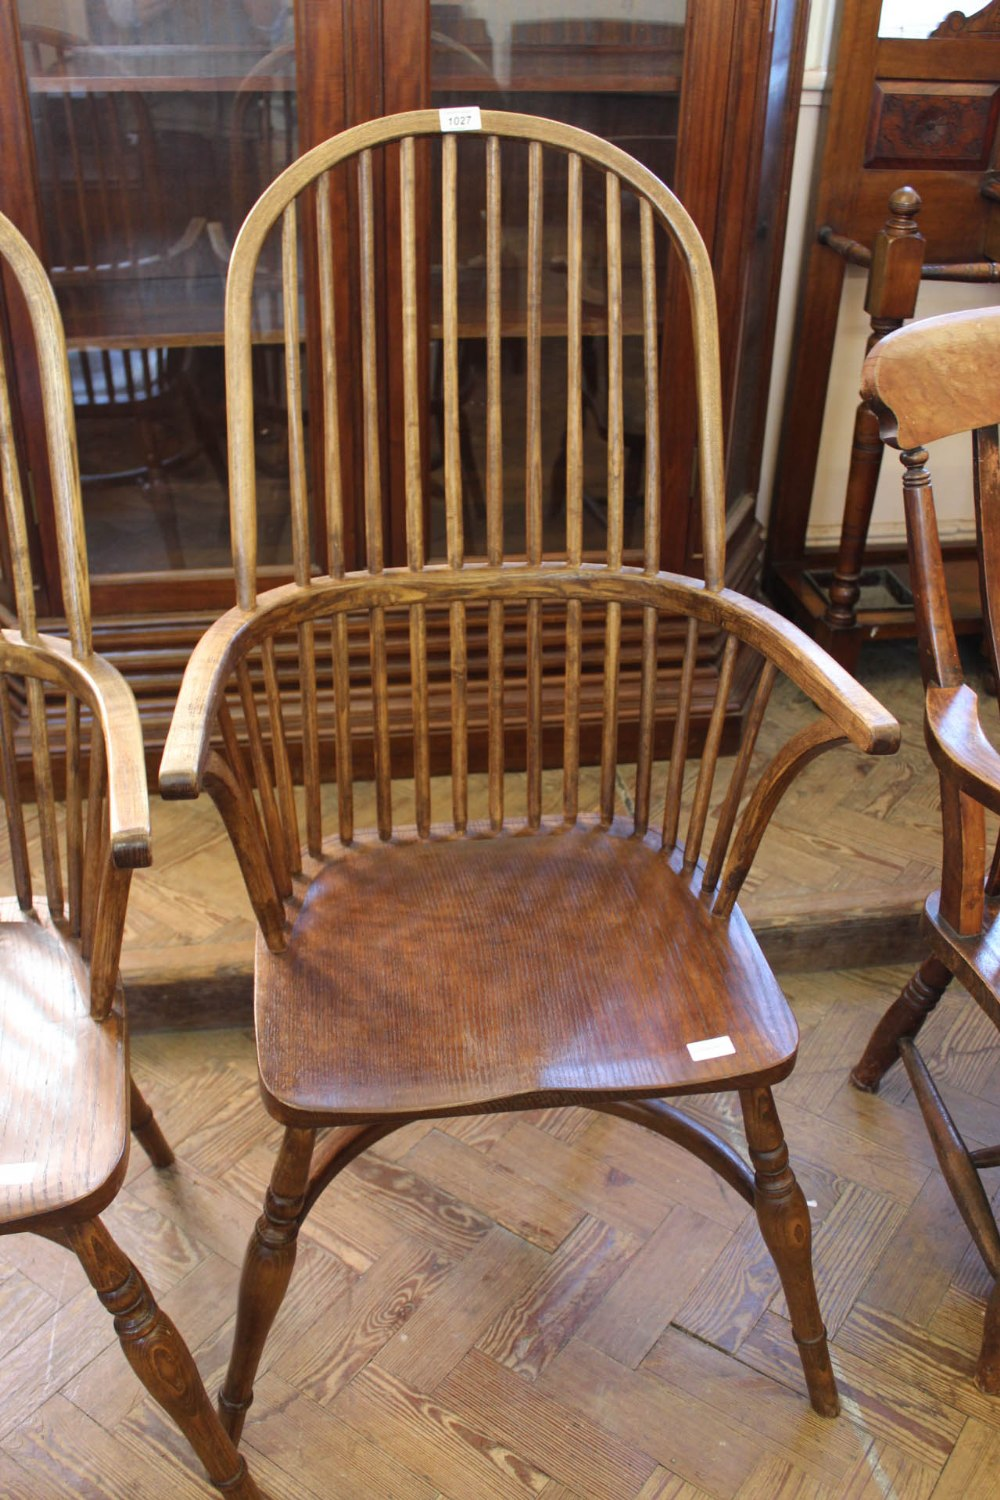 Lot 1027 - A traditionally locally crafted Windsor chair individually hand made from native hardwoods